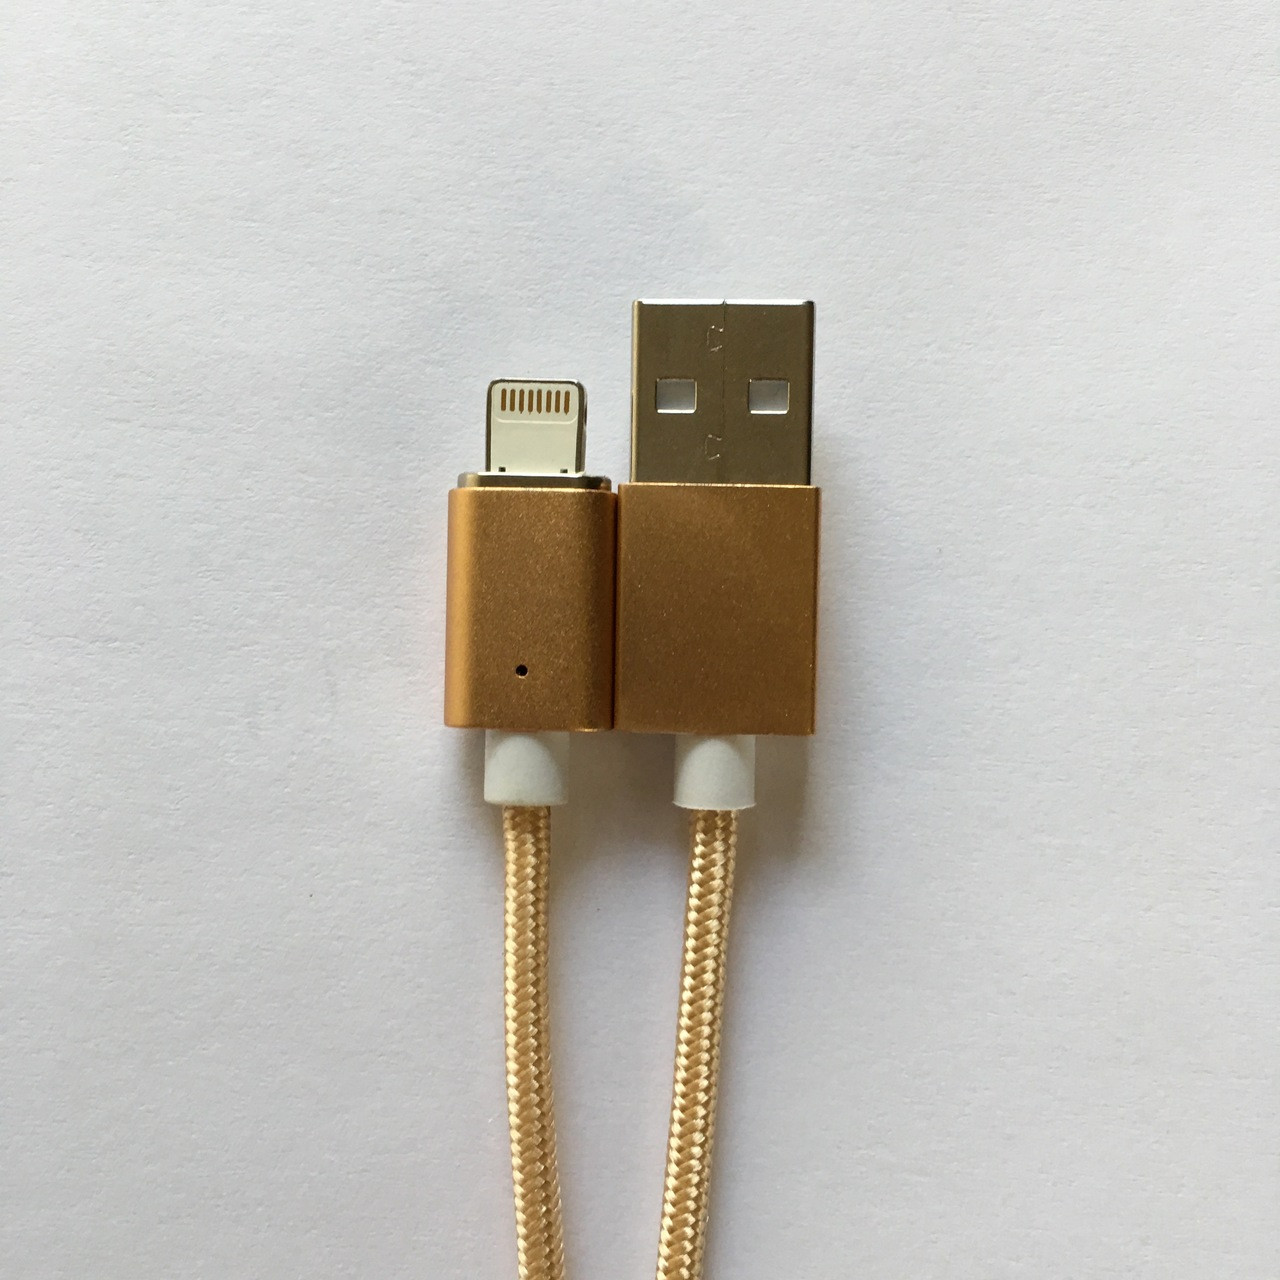 Magnetic USB cable for iPhone 8 Plus 7 6 5 in Gold - Lightning charger